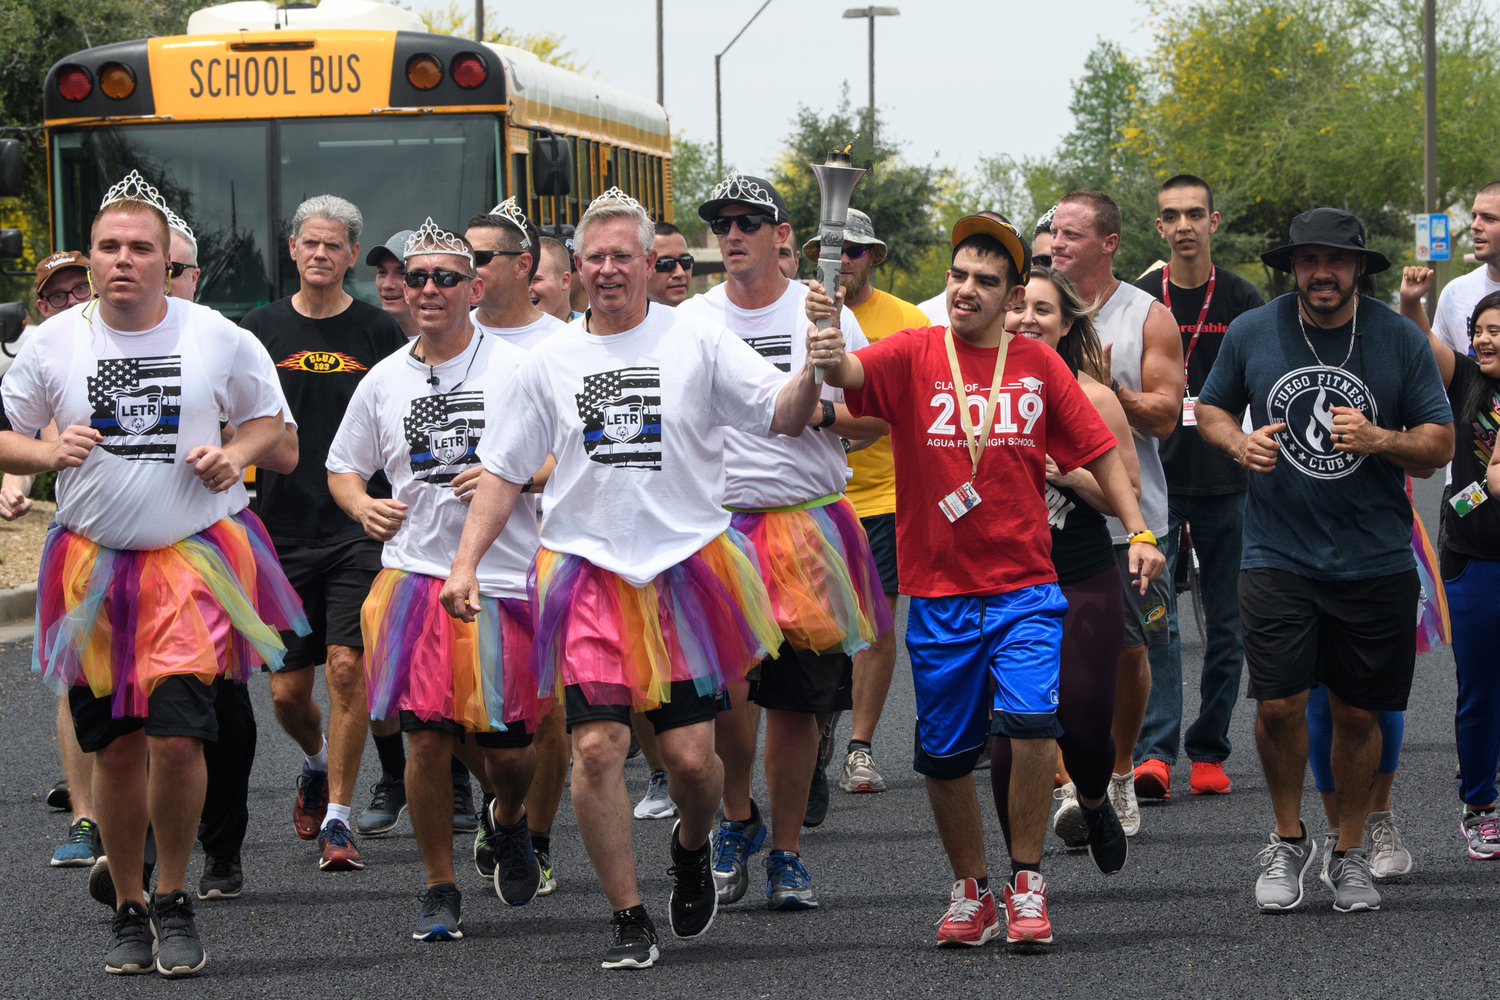 Avondale Police Chief Dale Nannenga carries the torch with a Special Olympian as he and his command staff run the department's leg of the 2019 Law Enforcement Torch Run wearing tutus after APD officers met the chief's T-shirt fundraising challenge.